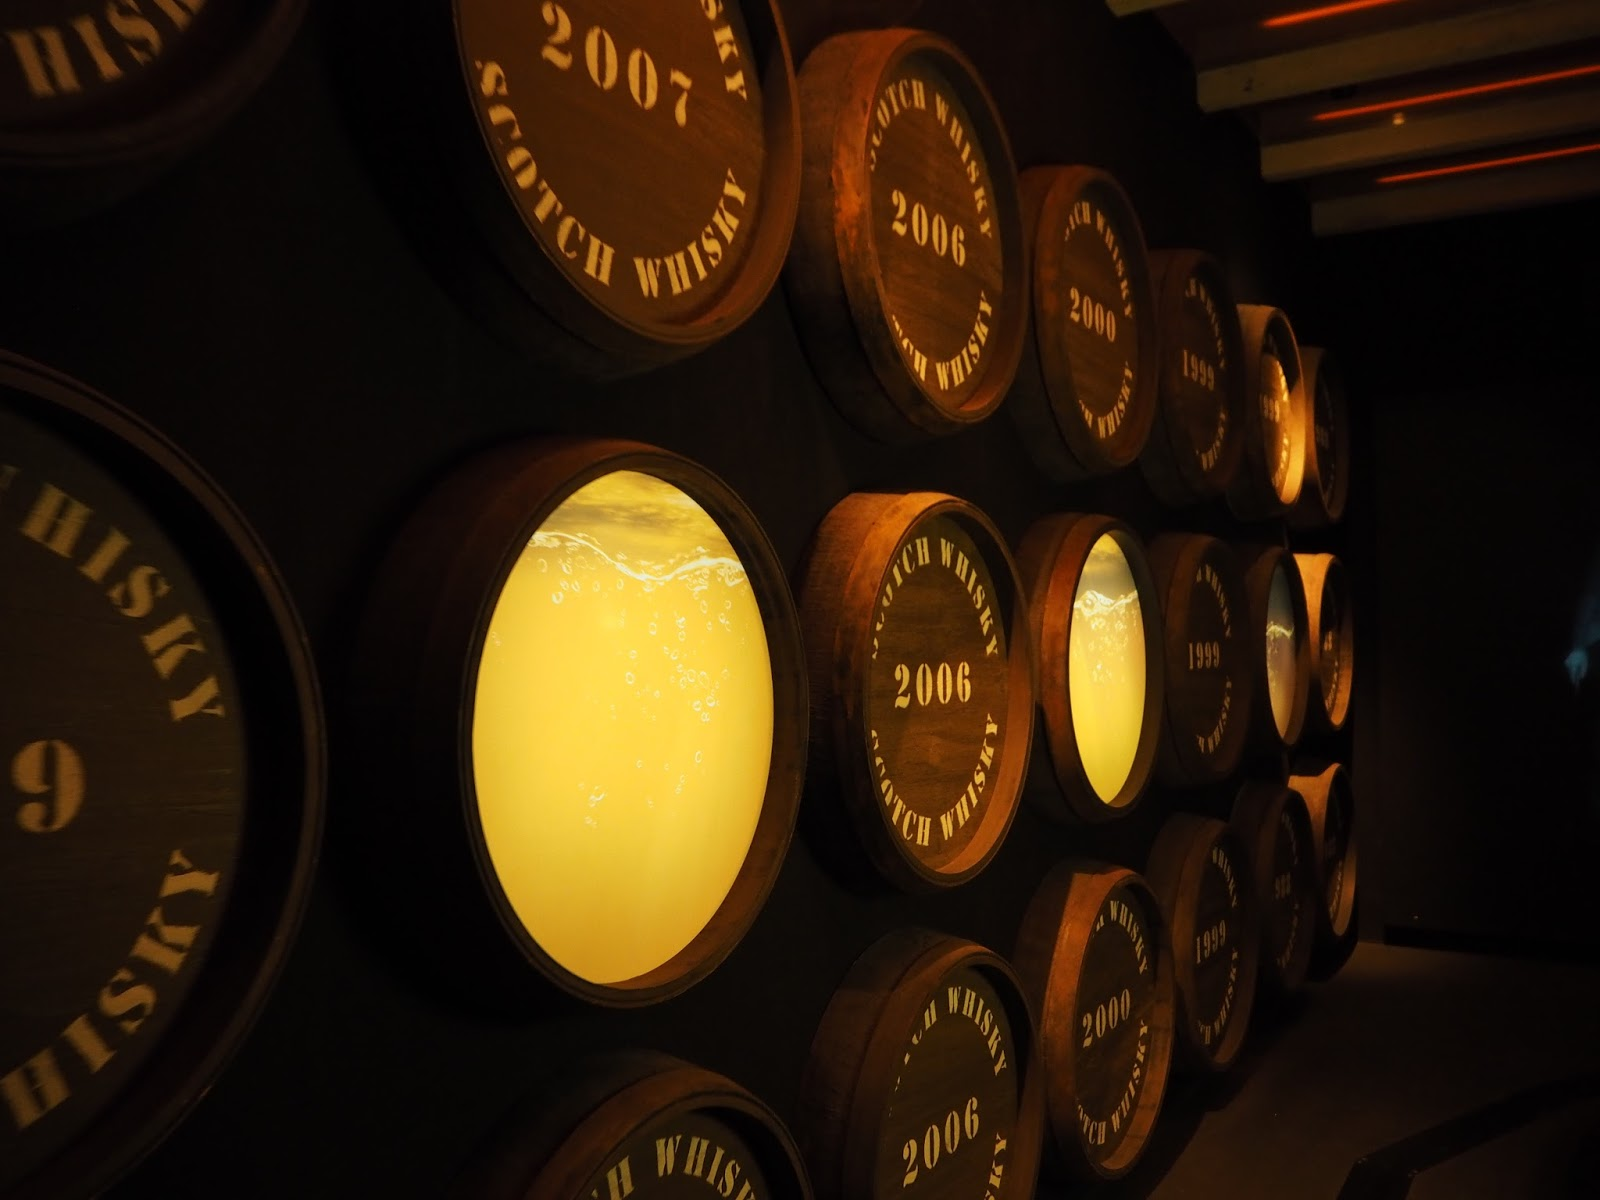 scotch whisky experience edinburgh